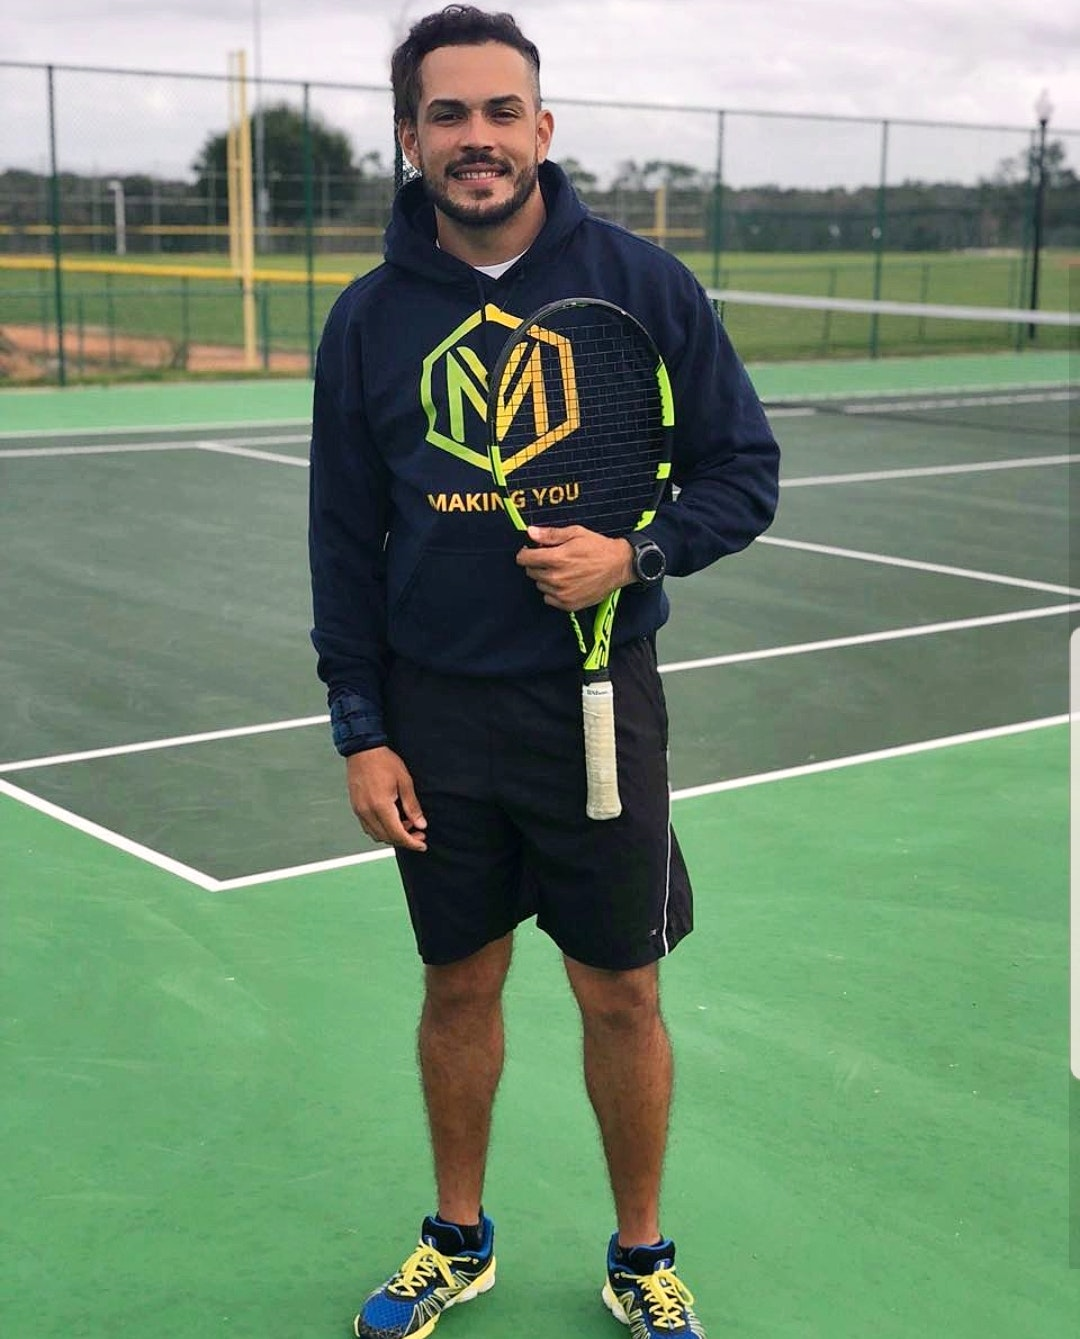 Giancarlo E. teaches tennis lessons in Kissimmee, FL